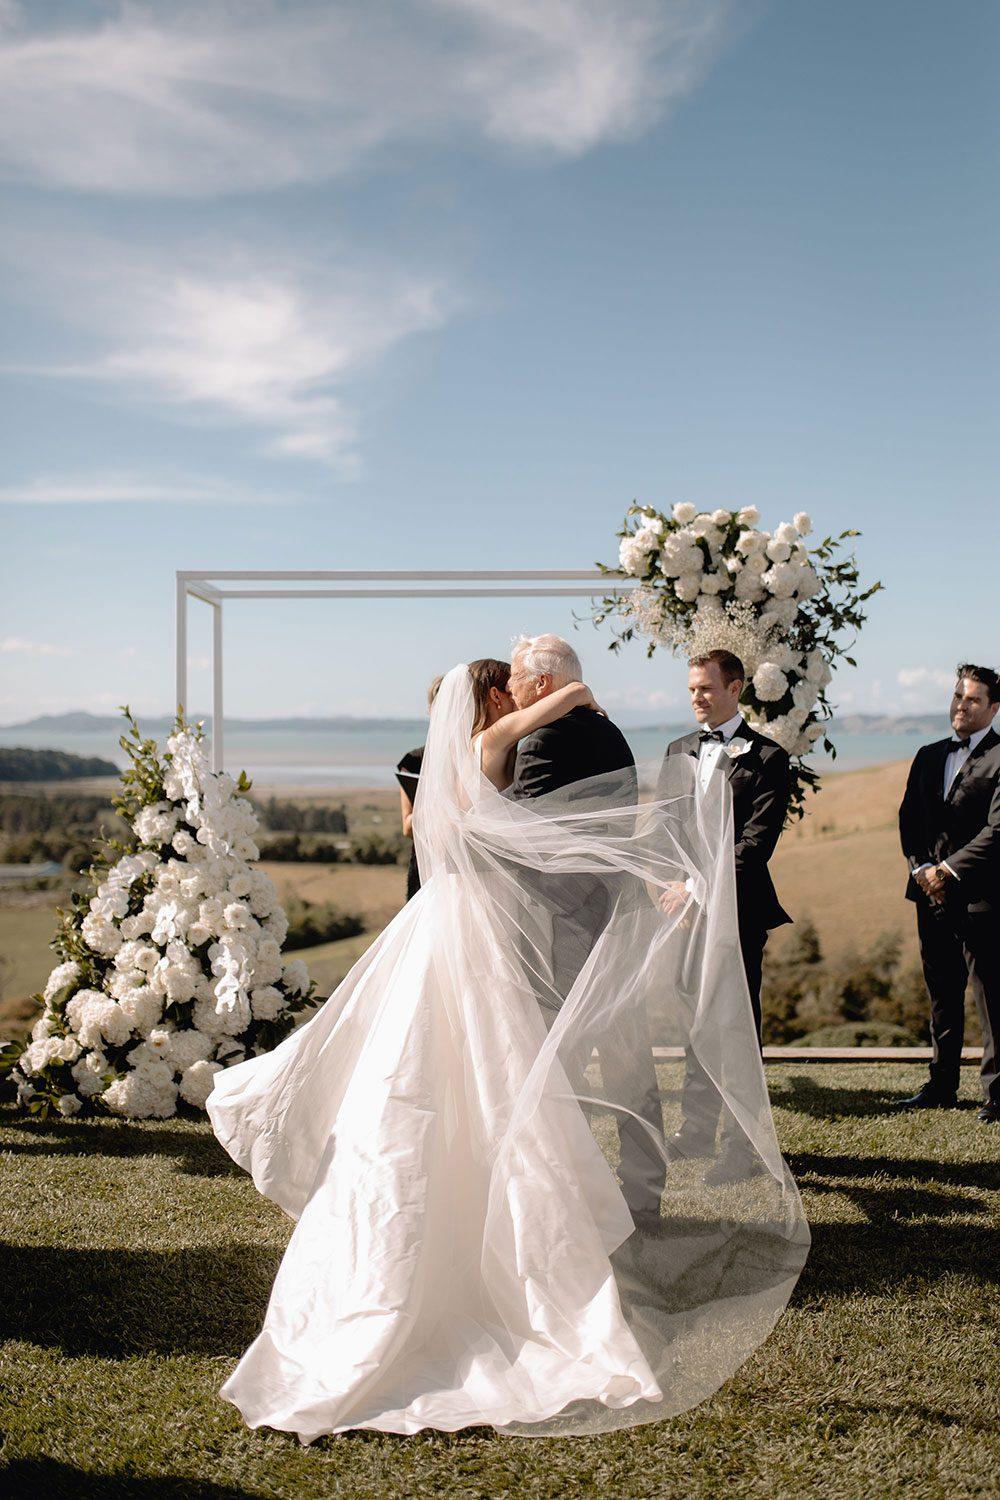 Bride wearing NZ Bespoke Bridal Gown made of silk faile with cowl bodice and detachable overskirt by Vinka Designs - giving away embrace